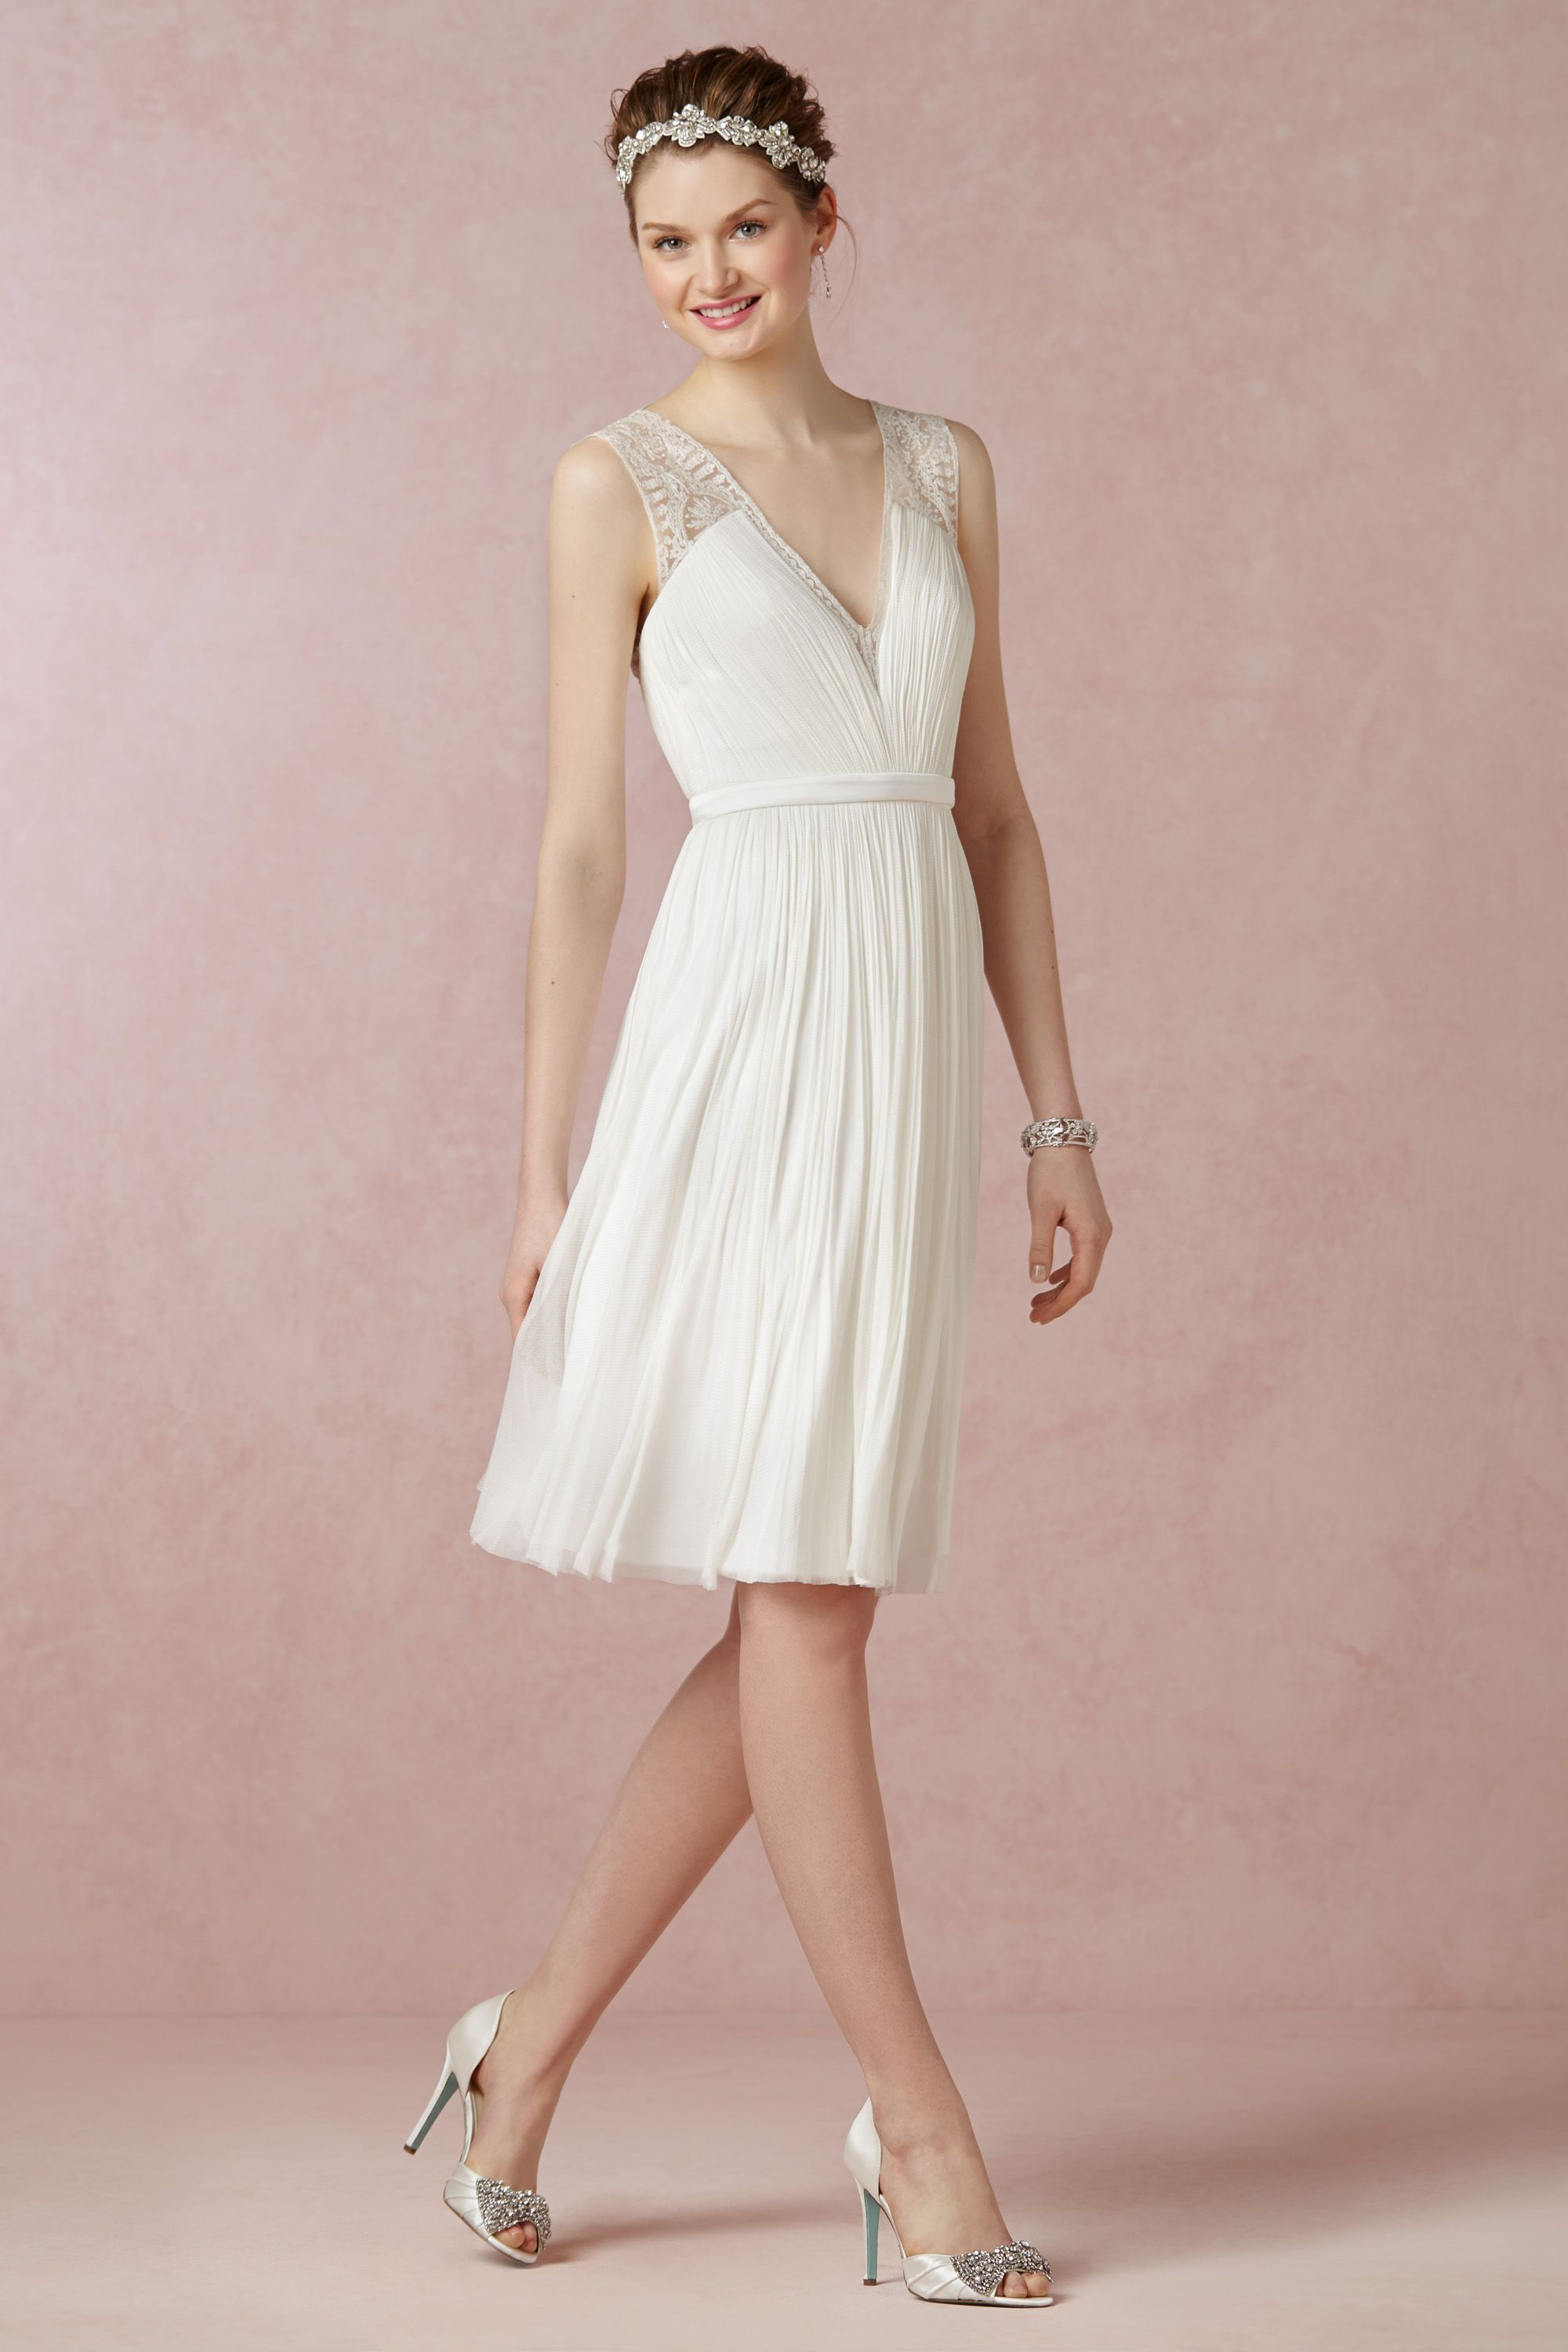 Valley dress at bhldn wedding dresses and bridal gowns pinterest